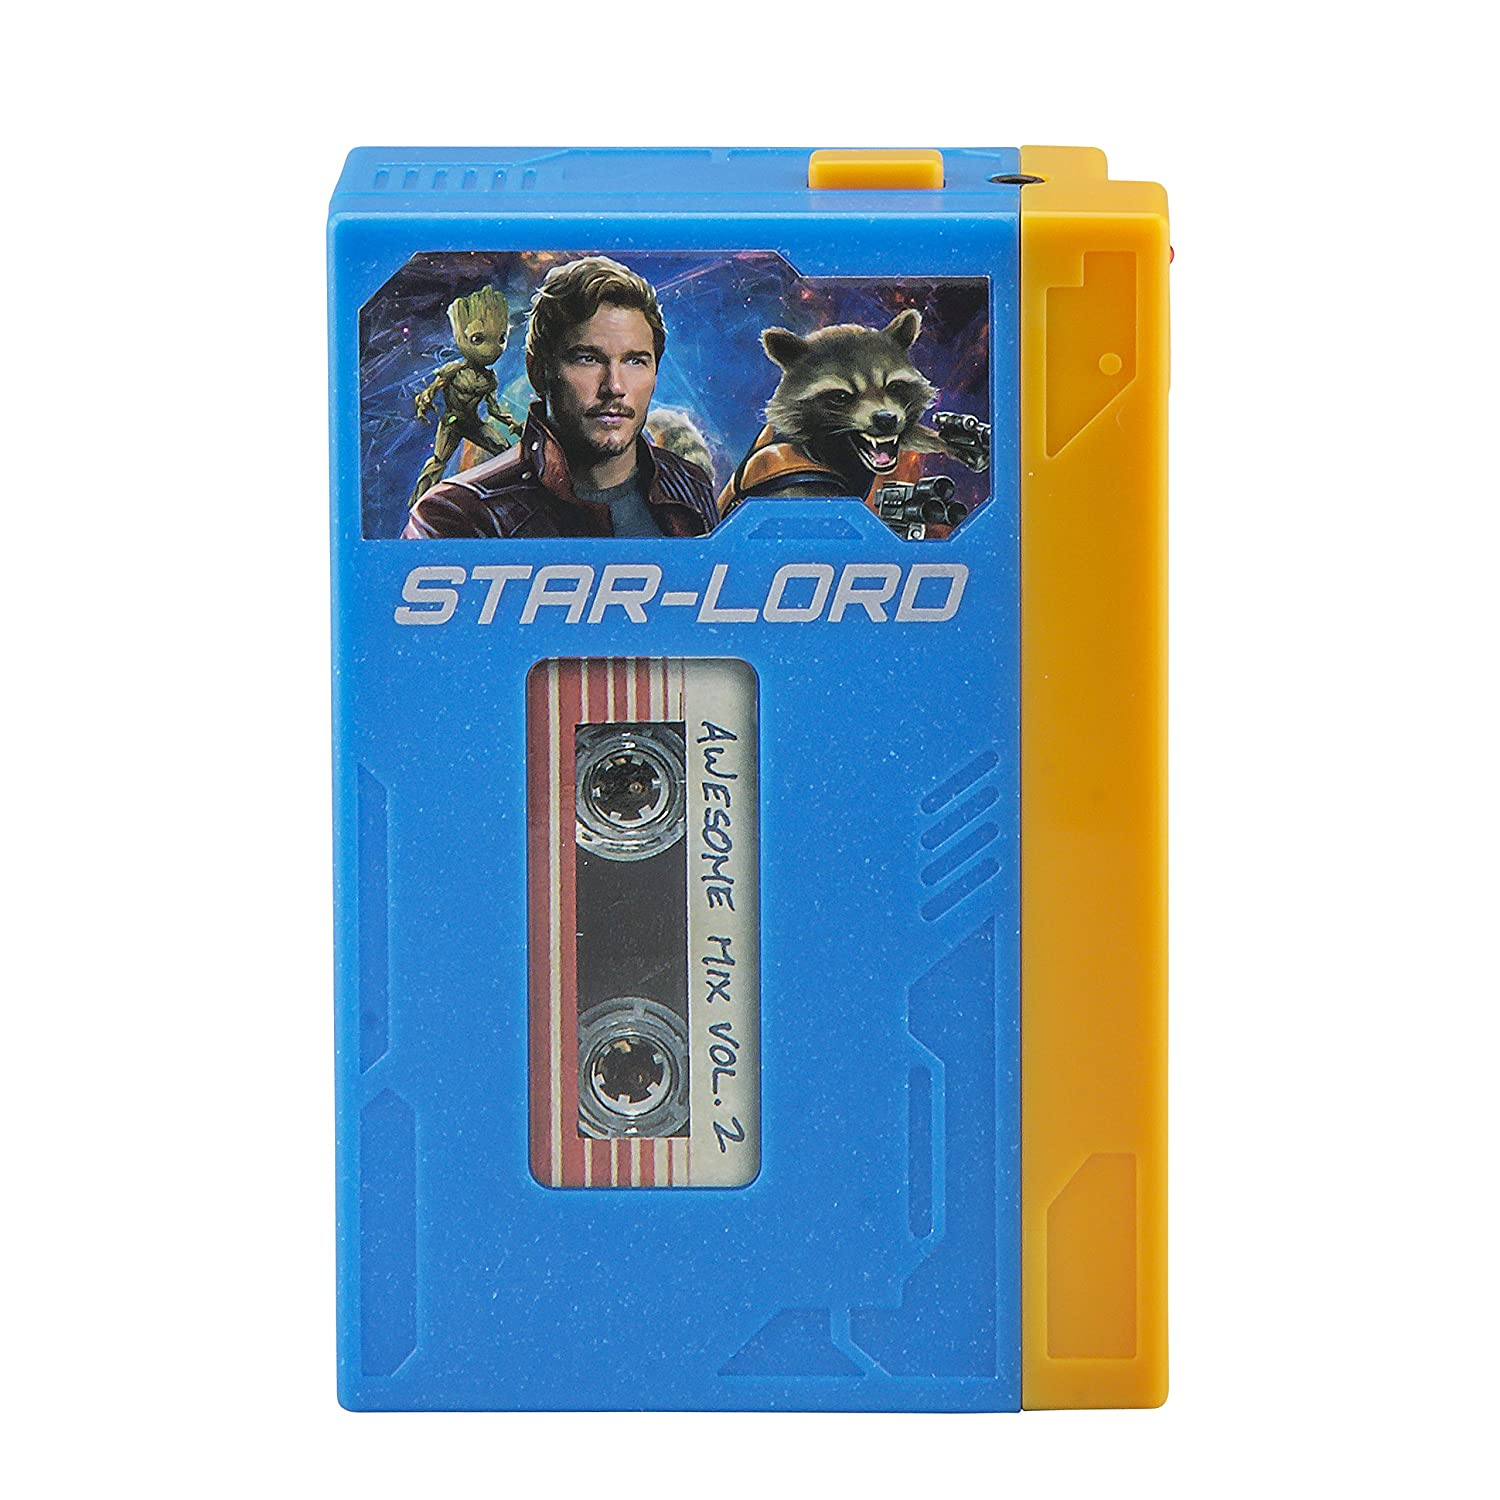 Guardians of The Galaxy Marvel Movie Toy Starlords Walkman Kids Voice Recorder and Kids mp3 Player All in One – Starlord Cassette Player with Starlords Headphones KIDdesigns Inc GG-120.FMV7